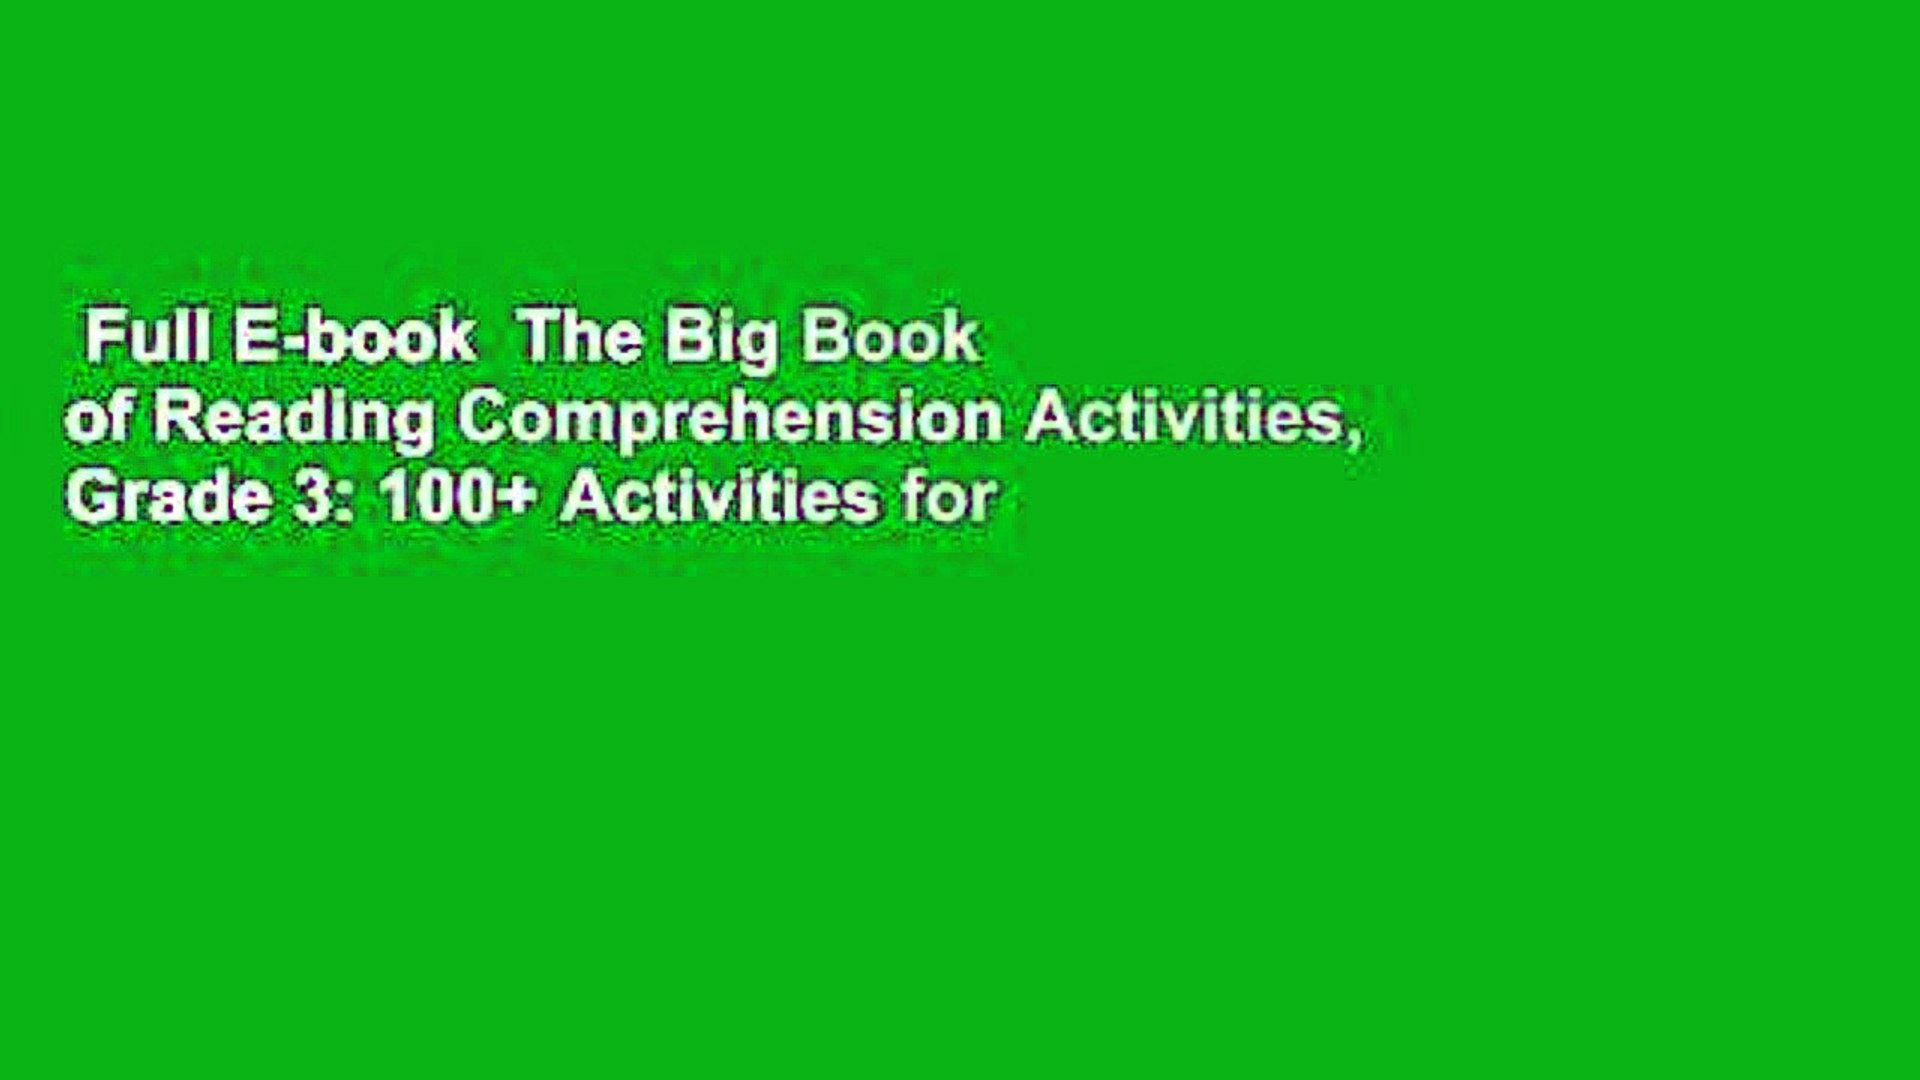 - Full E-book The Big Book Of Reading Comprehension Activities